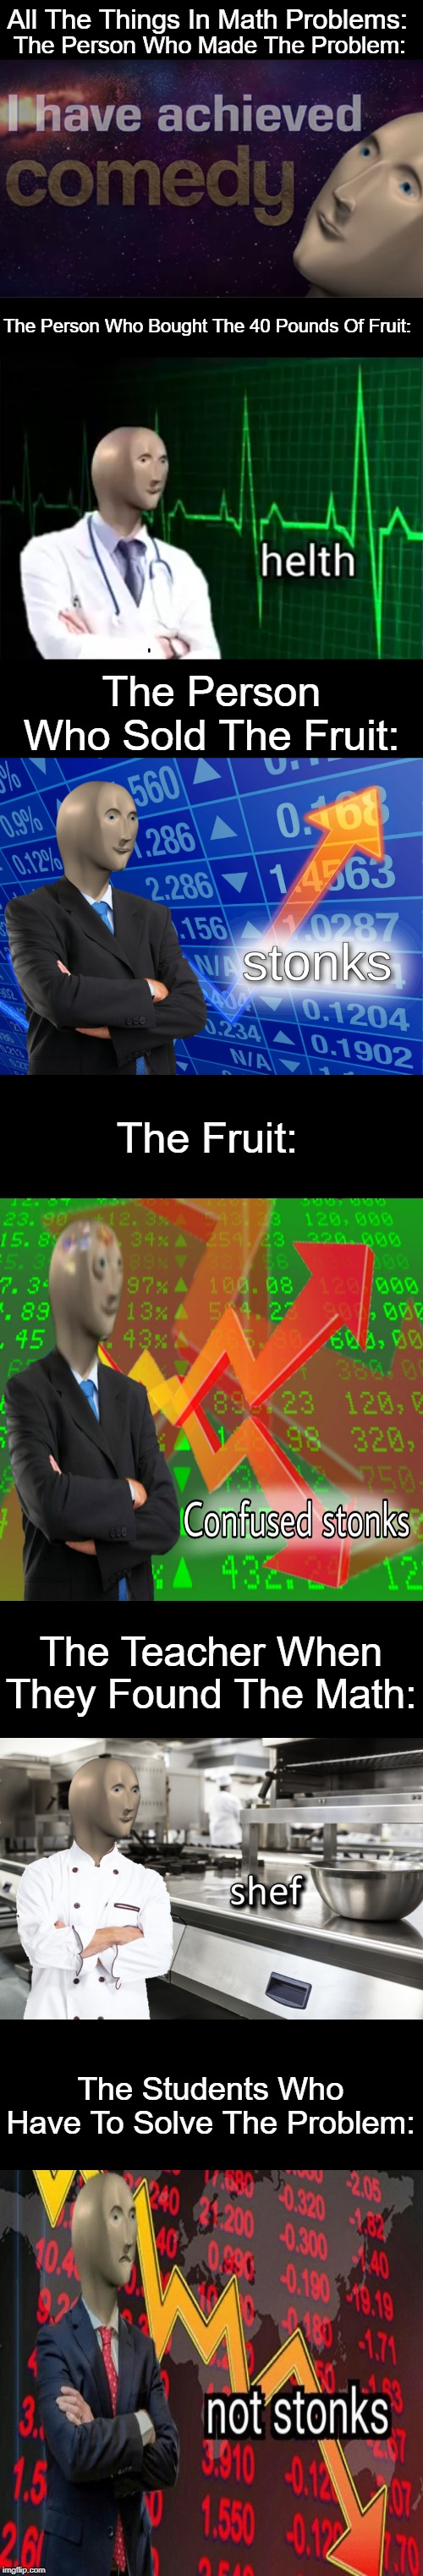 All The People In Math Problems | The Person Who Made The Problem: The Students Who Have To Solve The Problem: The Person Who Bought The 40 Pounds Of Fruit: The Person Who So | image tagged in stonks,not stonks,i have achieved comedy,confused stonks,helth,meme man shef | made w/ Imgflip meme maker